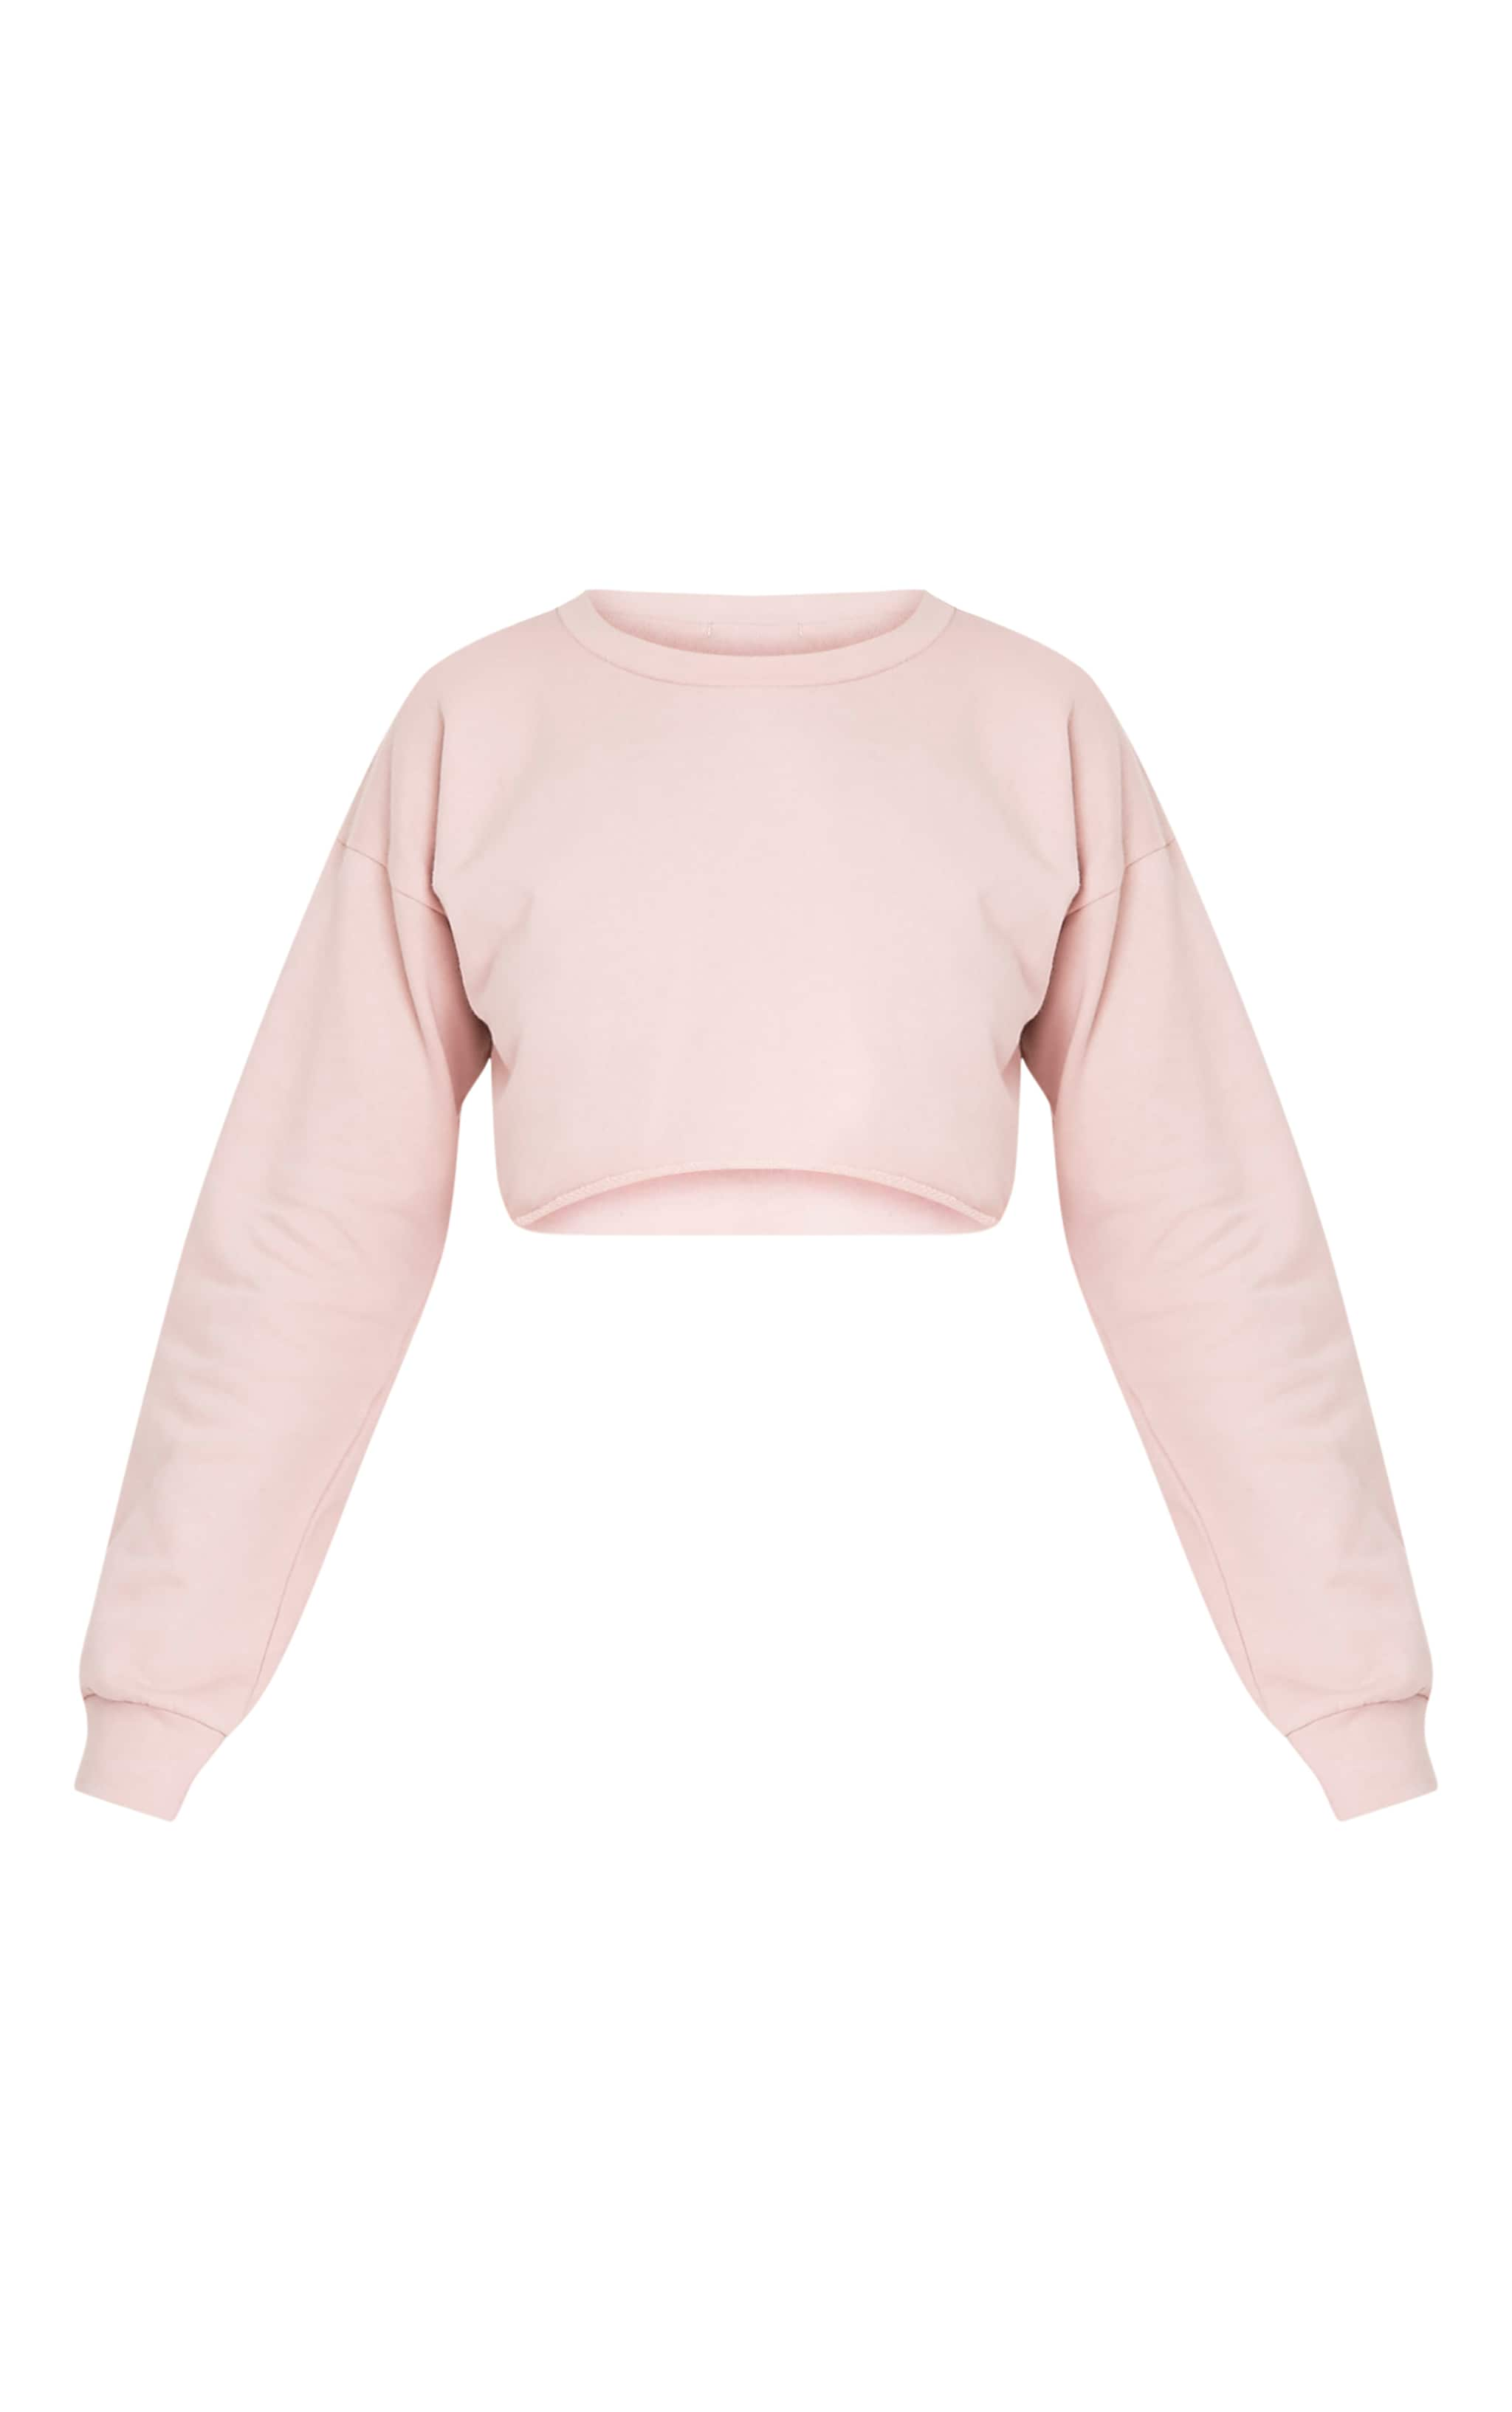 Beau Pink Cut Off Crop Longsleeve Sweater 3